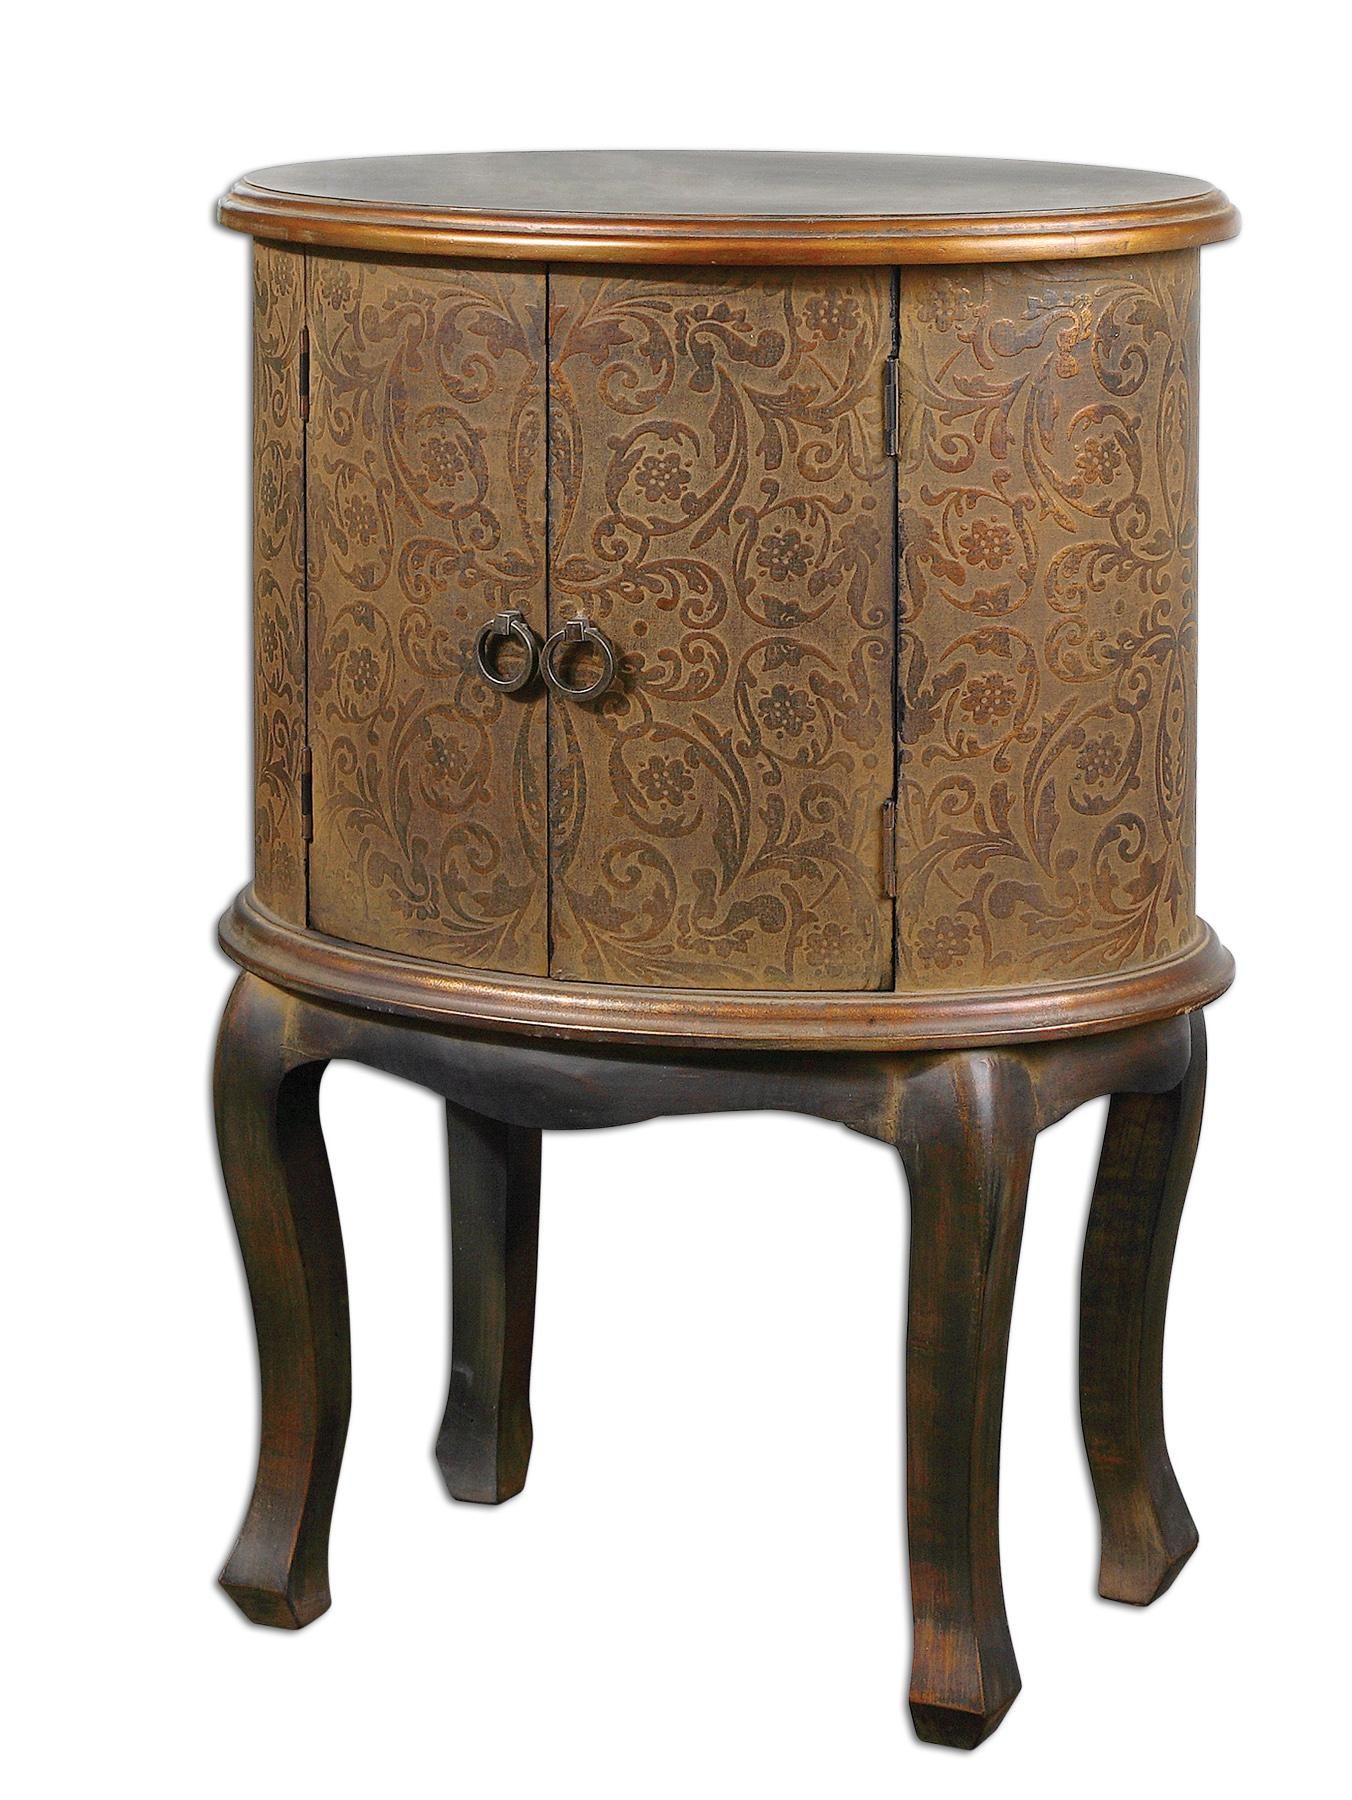 Uttermost Accent Furniture Ascencion Accent Table - Item Number: 24241